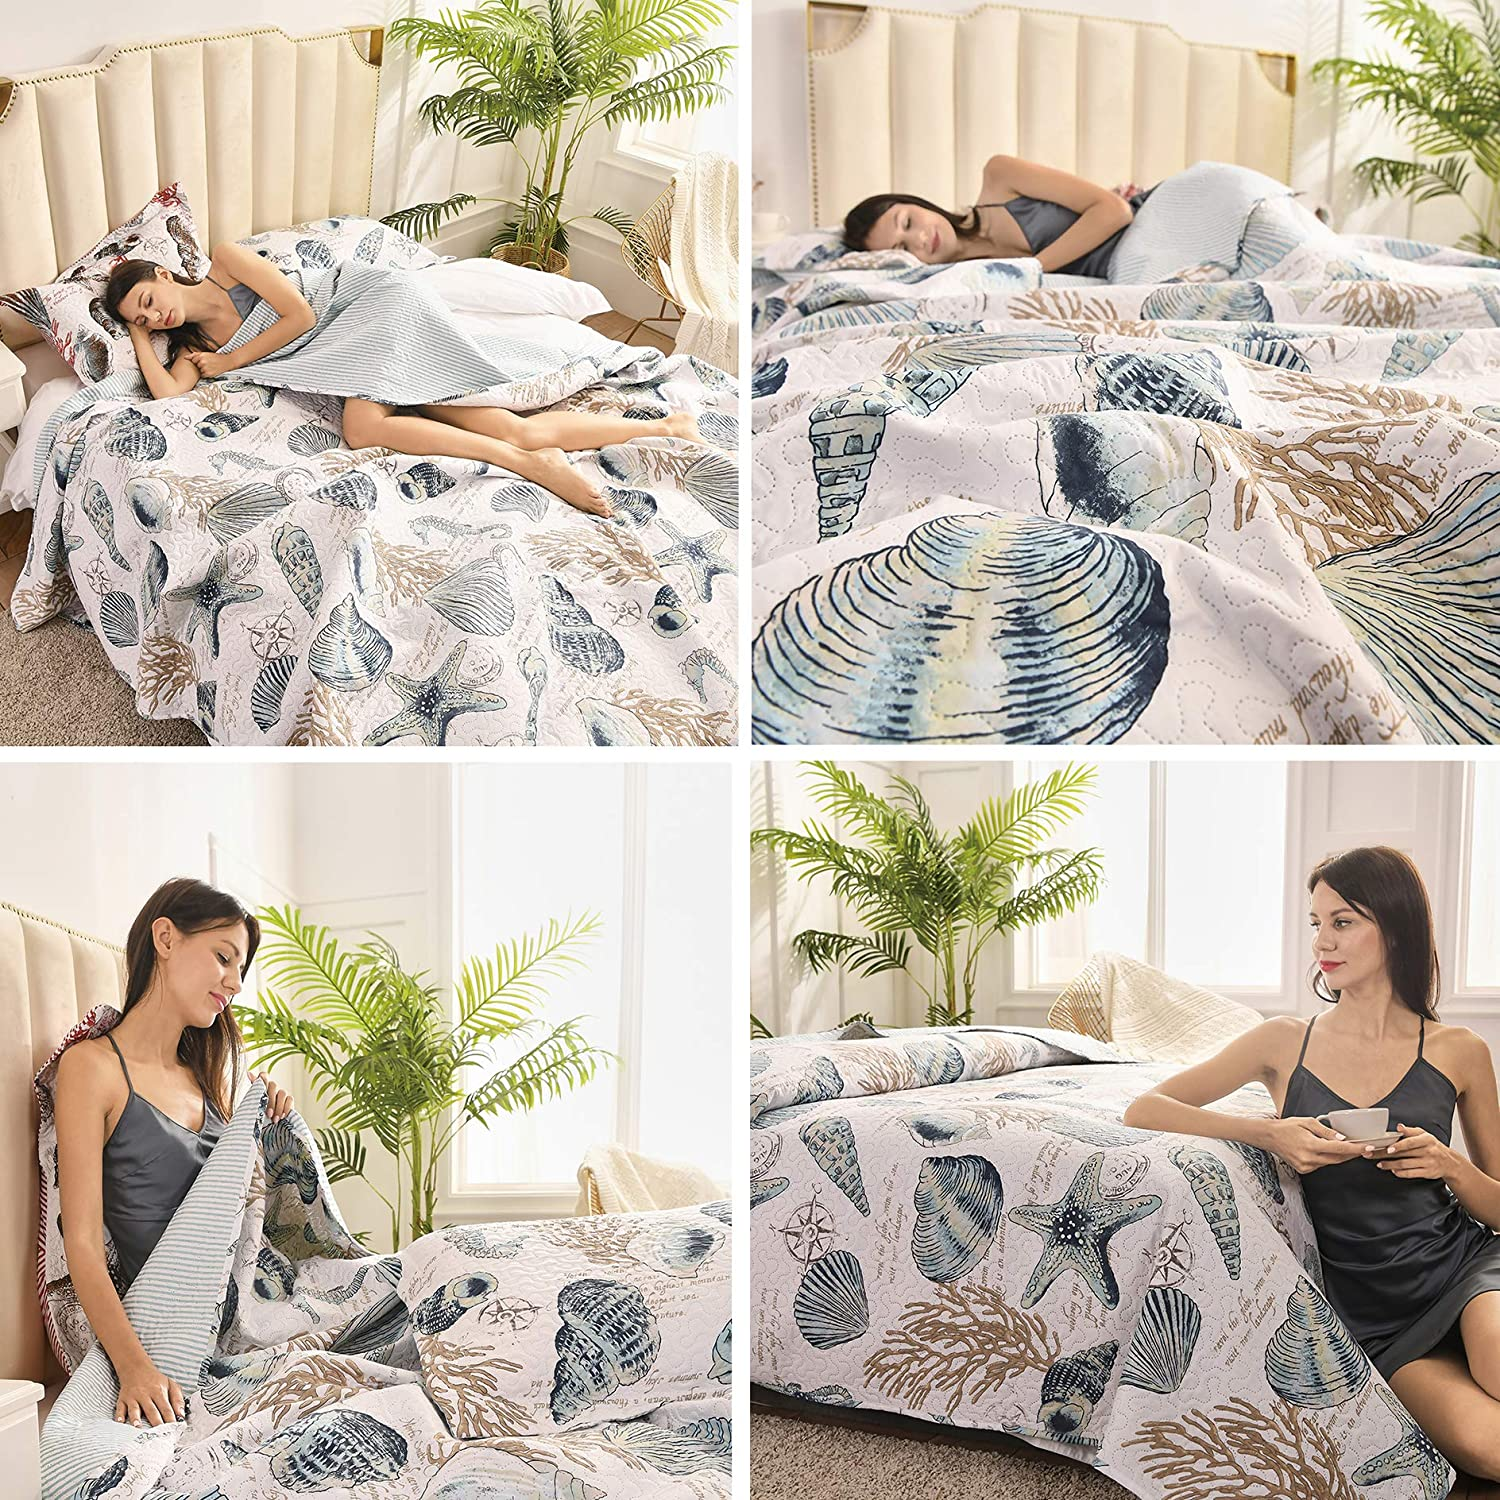 3 Pieces Beach Shell Bedspread Queen Size Ocean Theme Seashell Conch Summer Quilt Lightweight Thin Reversible Conch Shell Hippocampus Starfish Coral Printed Coverlet Set Coastal Bedding-Blue White